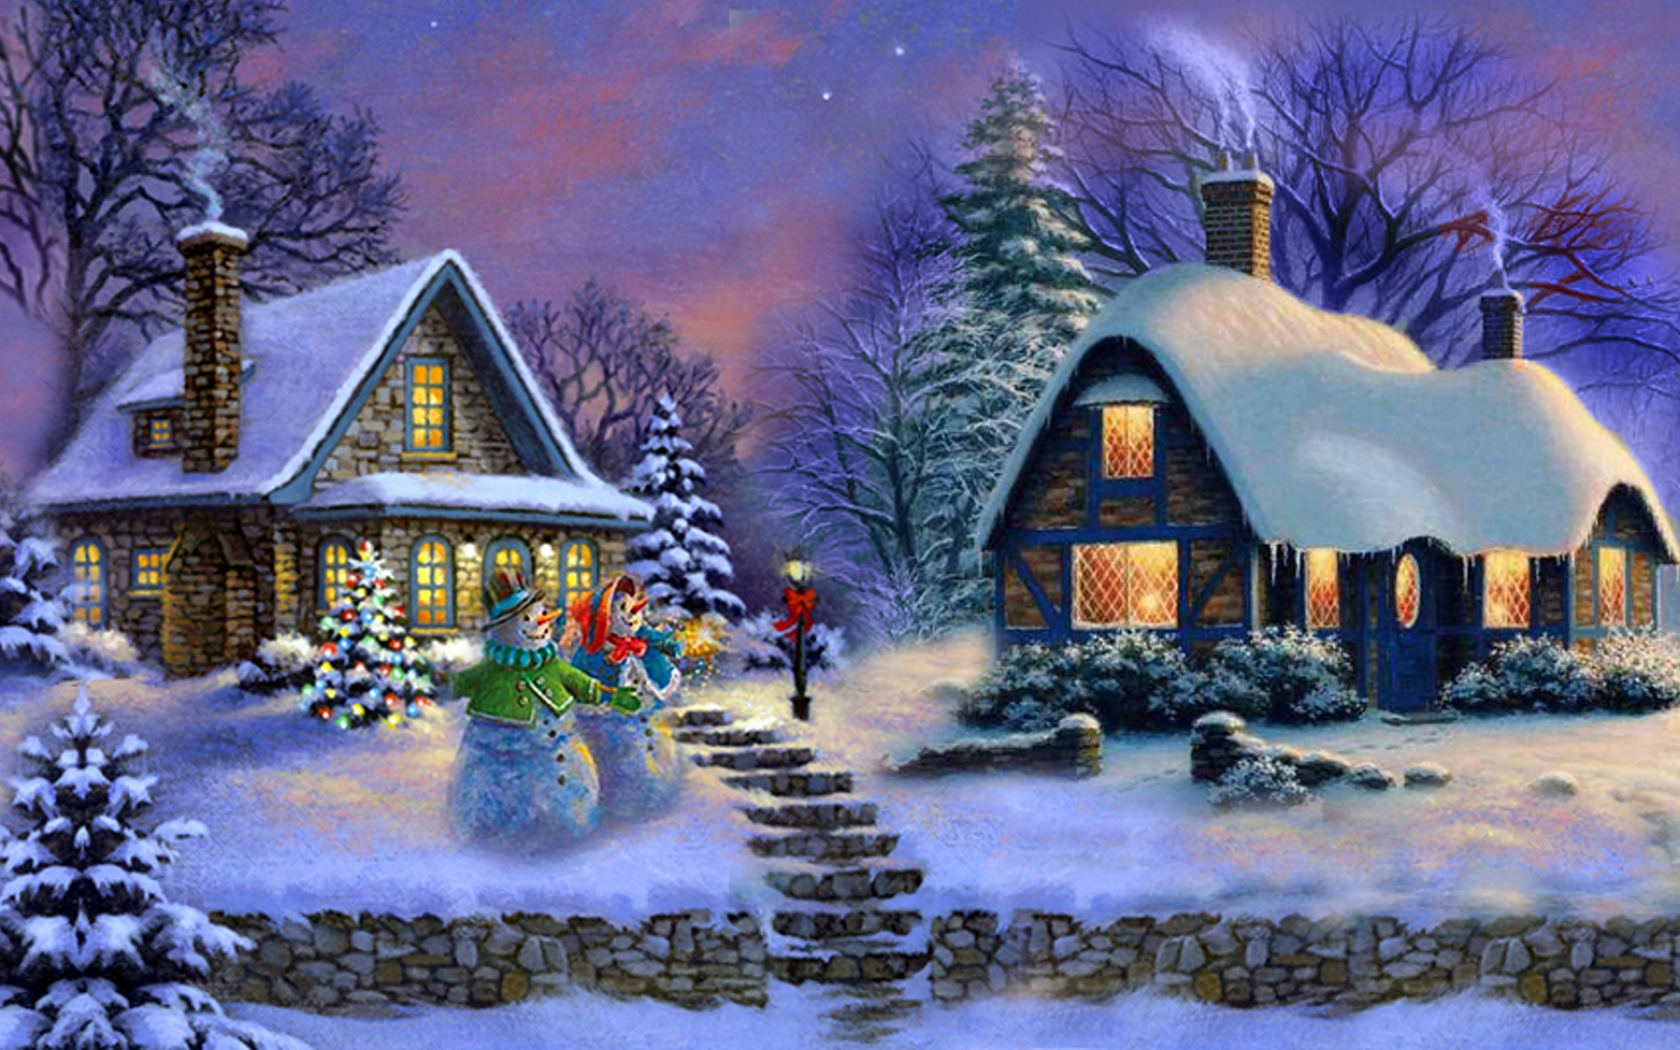 Christmas house painting - Artistic Painting Artistic Christmas House Snowman Tree Wallpaper